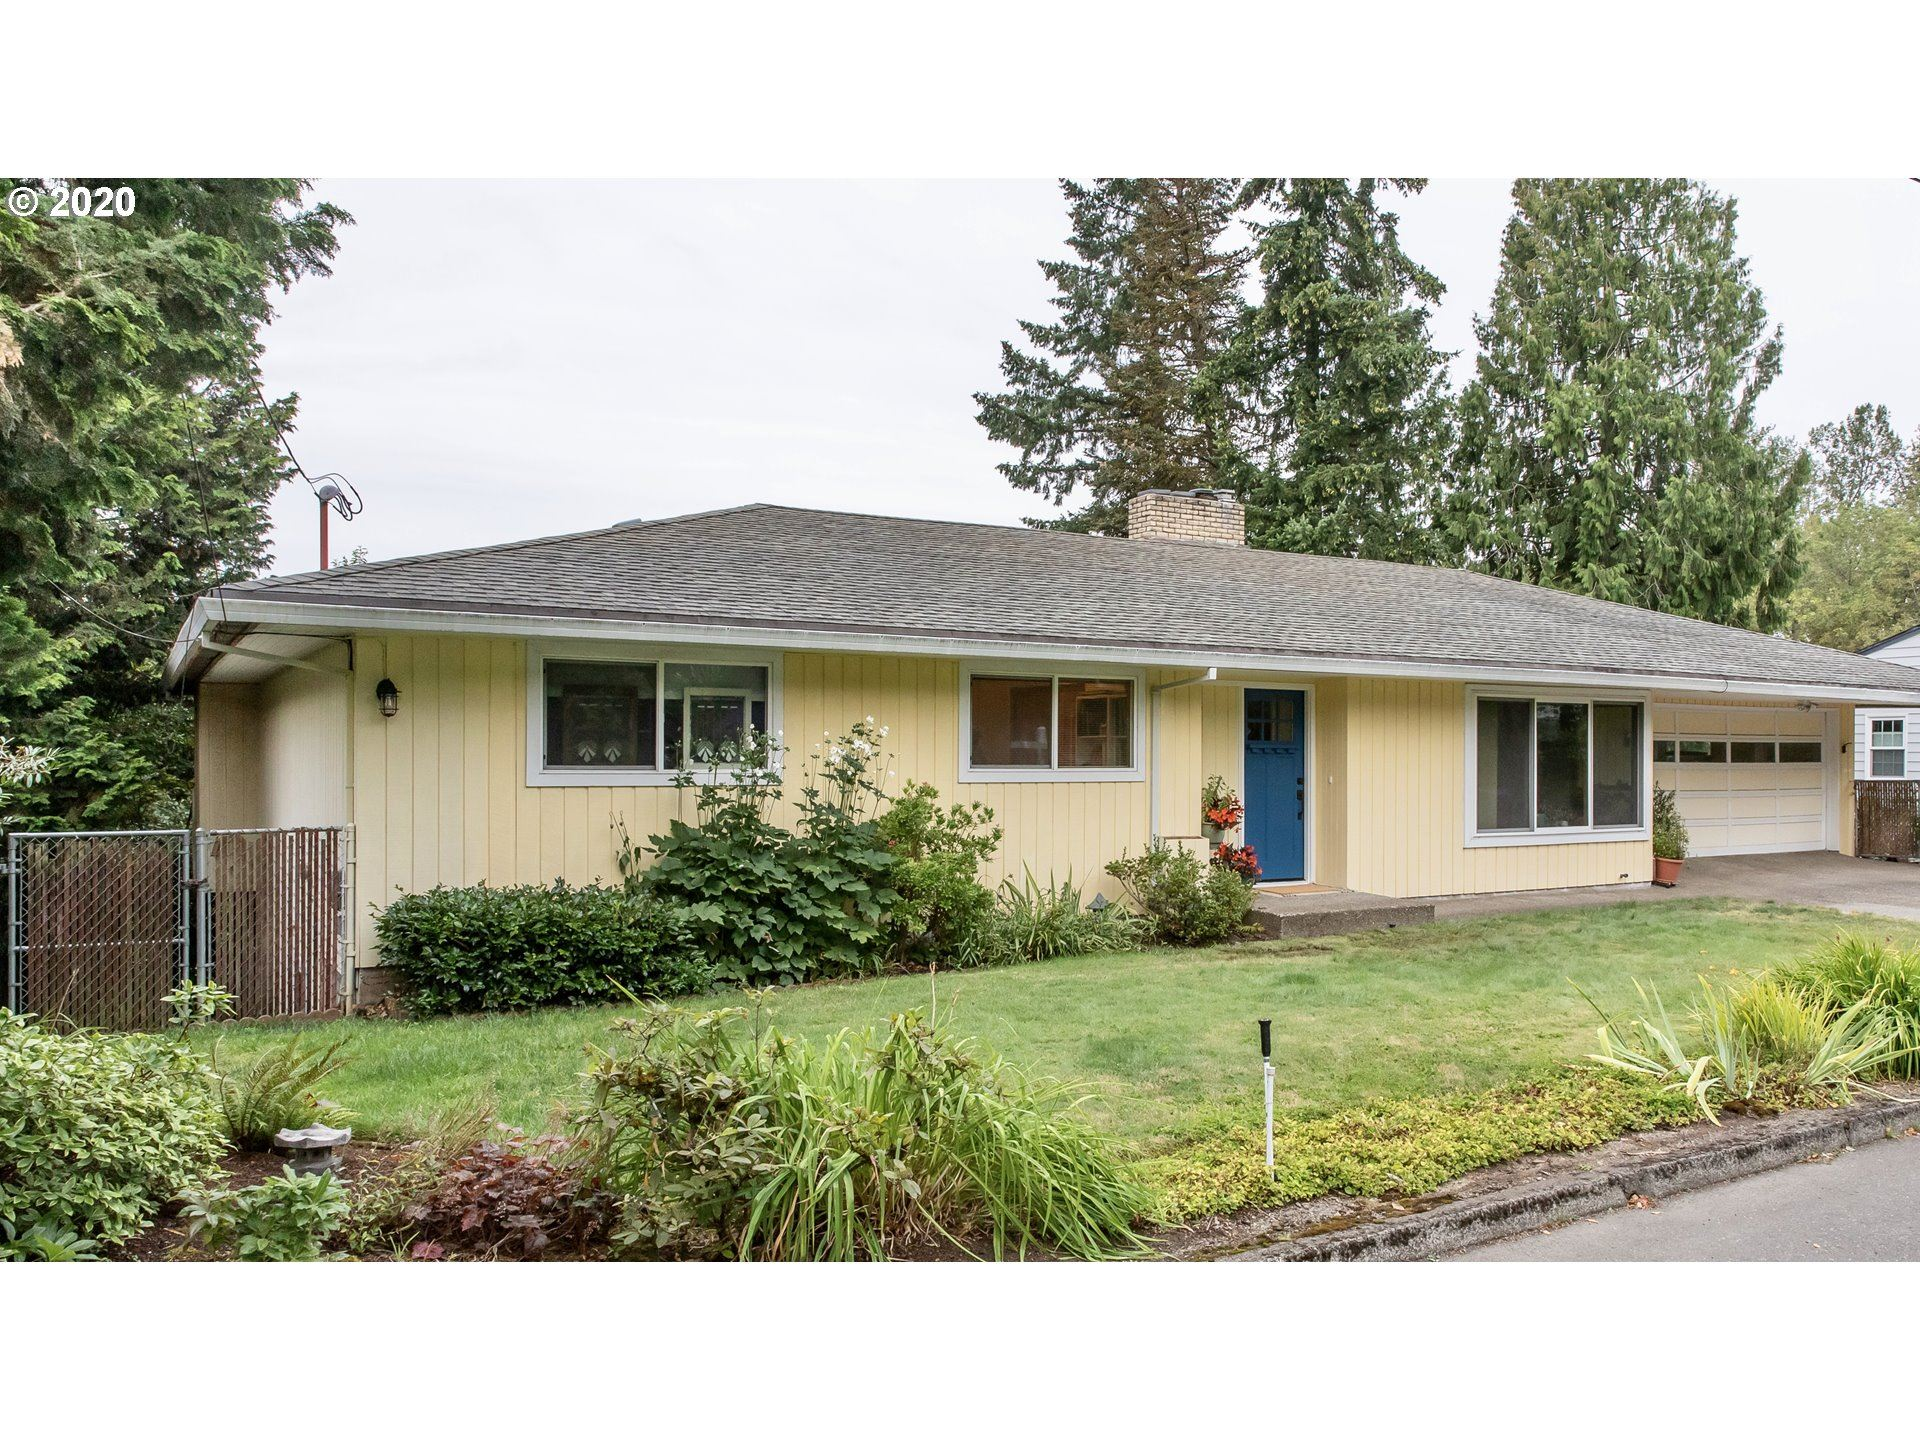 8821 SW 57TH AVE, Portland, OR 97219 - MLS#: 20654605